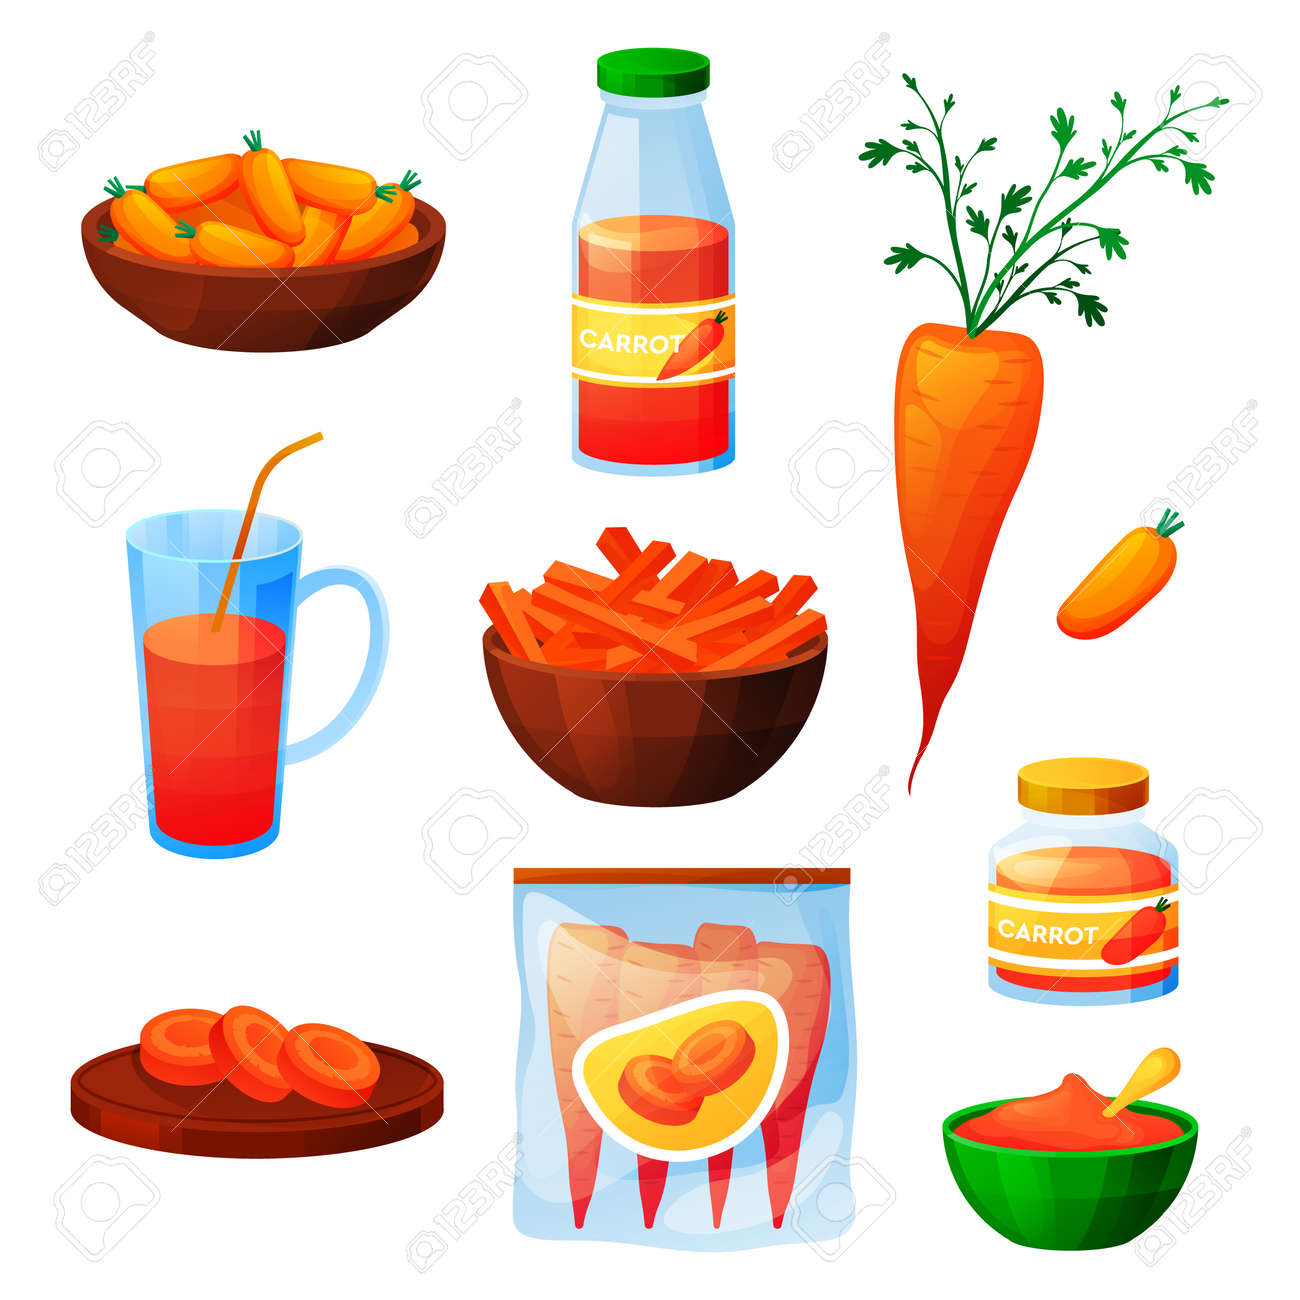 Carrot food, vegetable products, juice and eating - 165881606